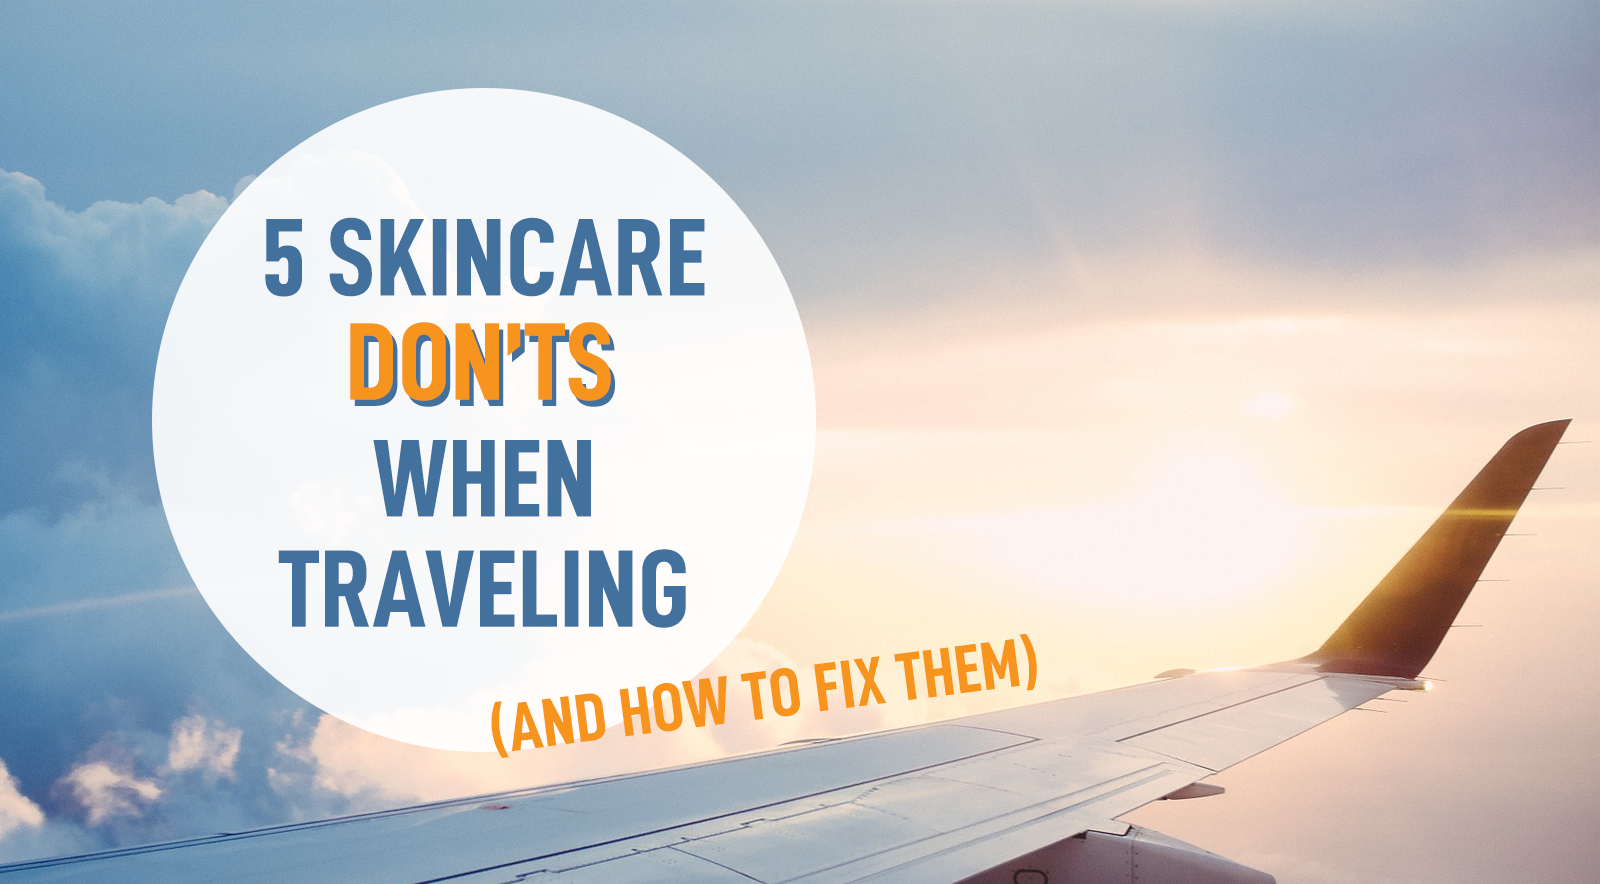 5 SKINCARE DON'TS WHEN TRAVELING | by DERMABELL